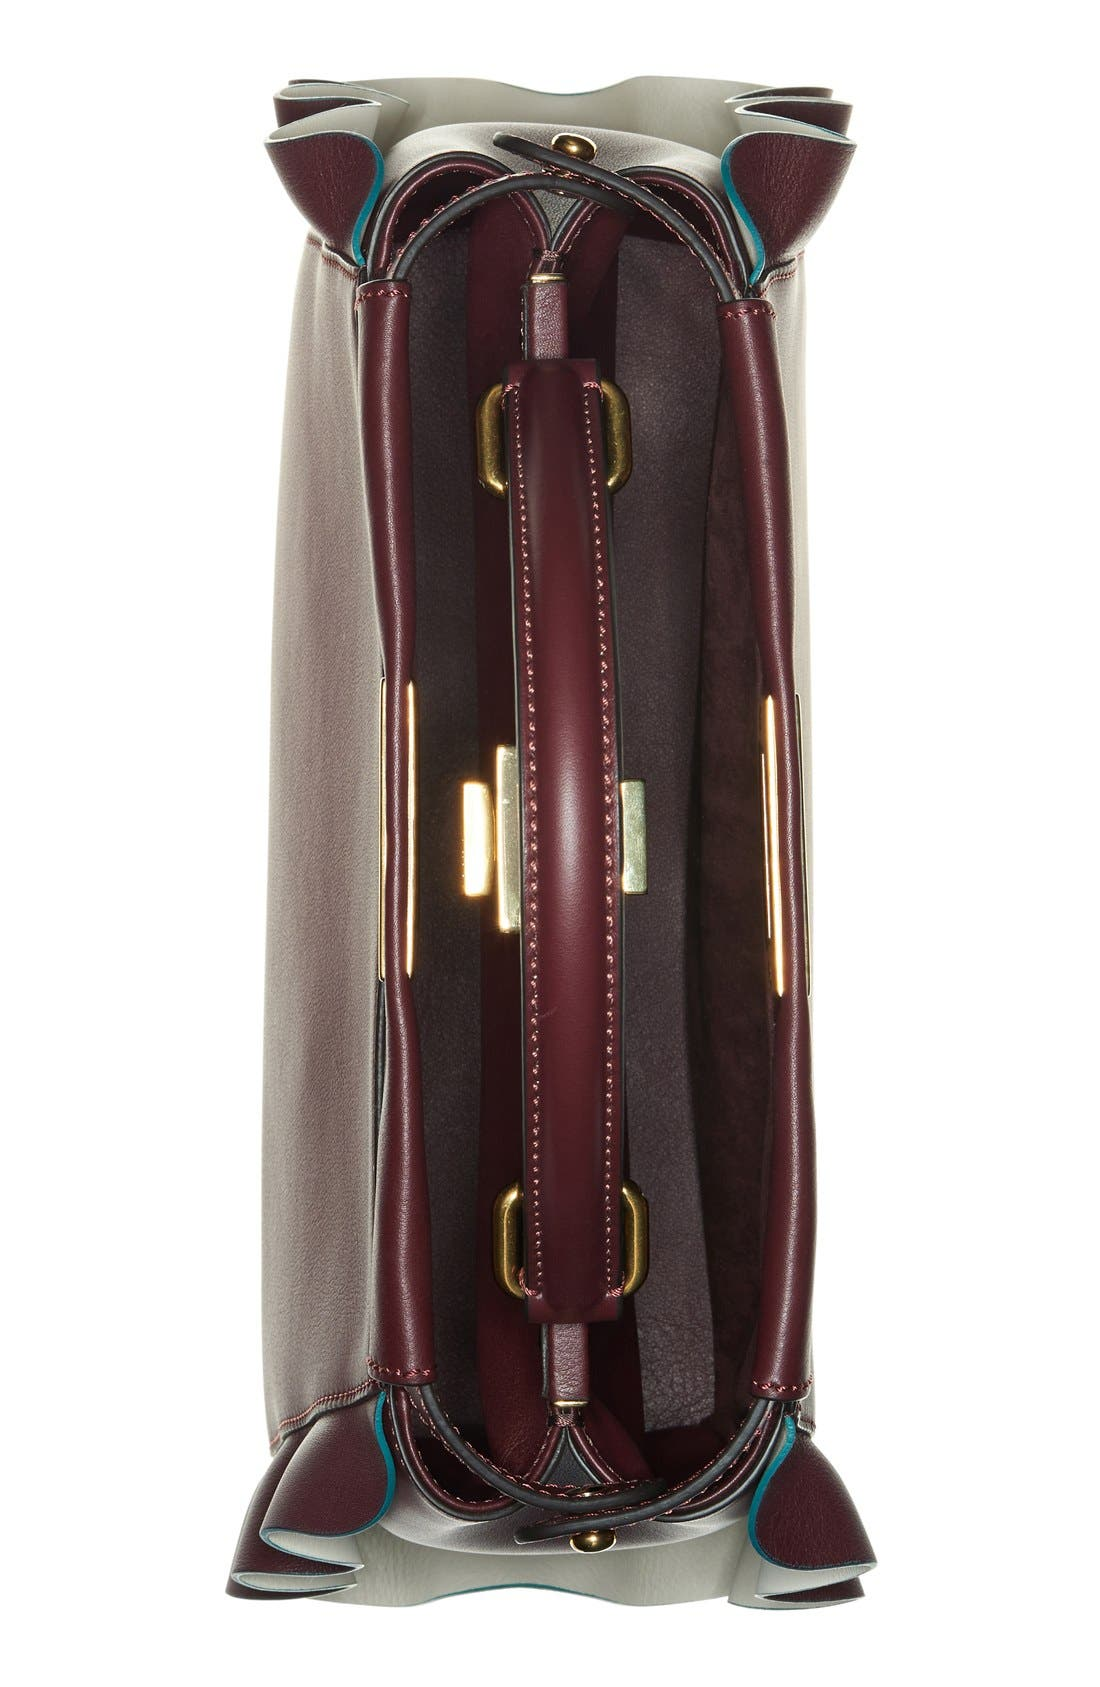 'Medium Peekaboo - Wave' Leather Bag,                             Alternate thumbnail 4, color,                             Bordeaux/ Milk/ Soft Gold